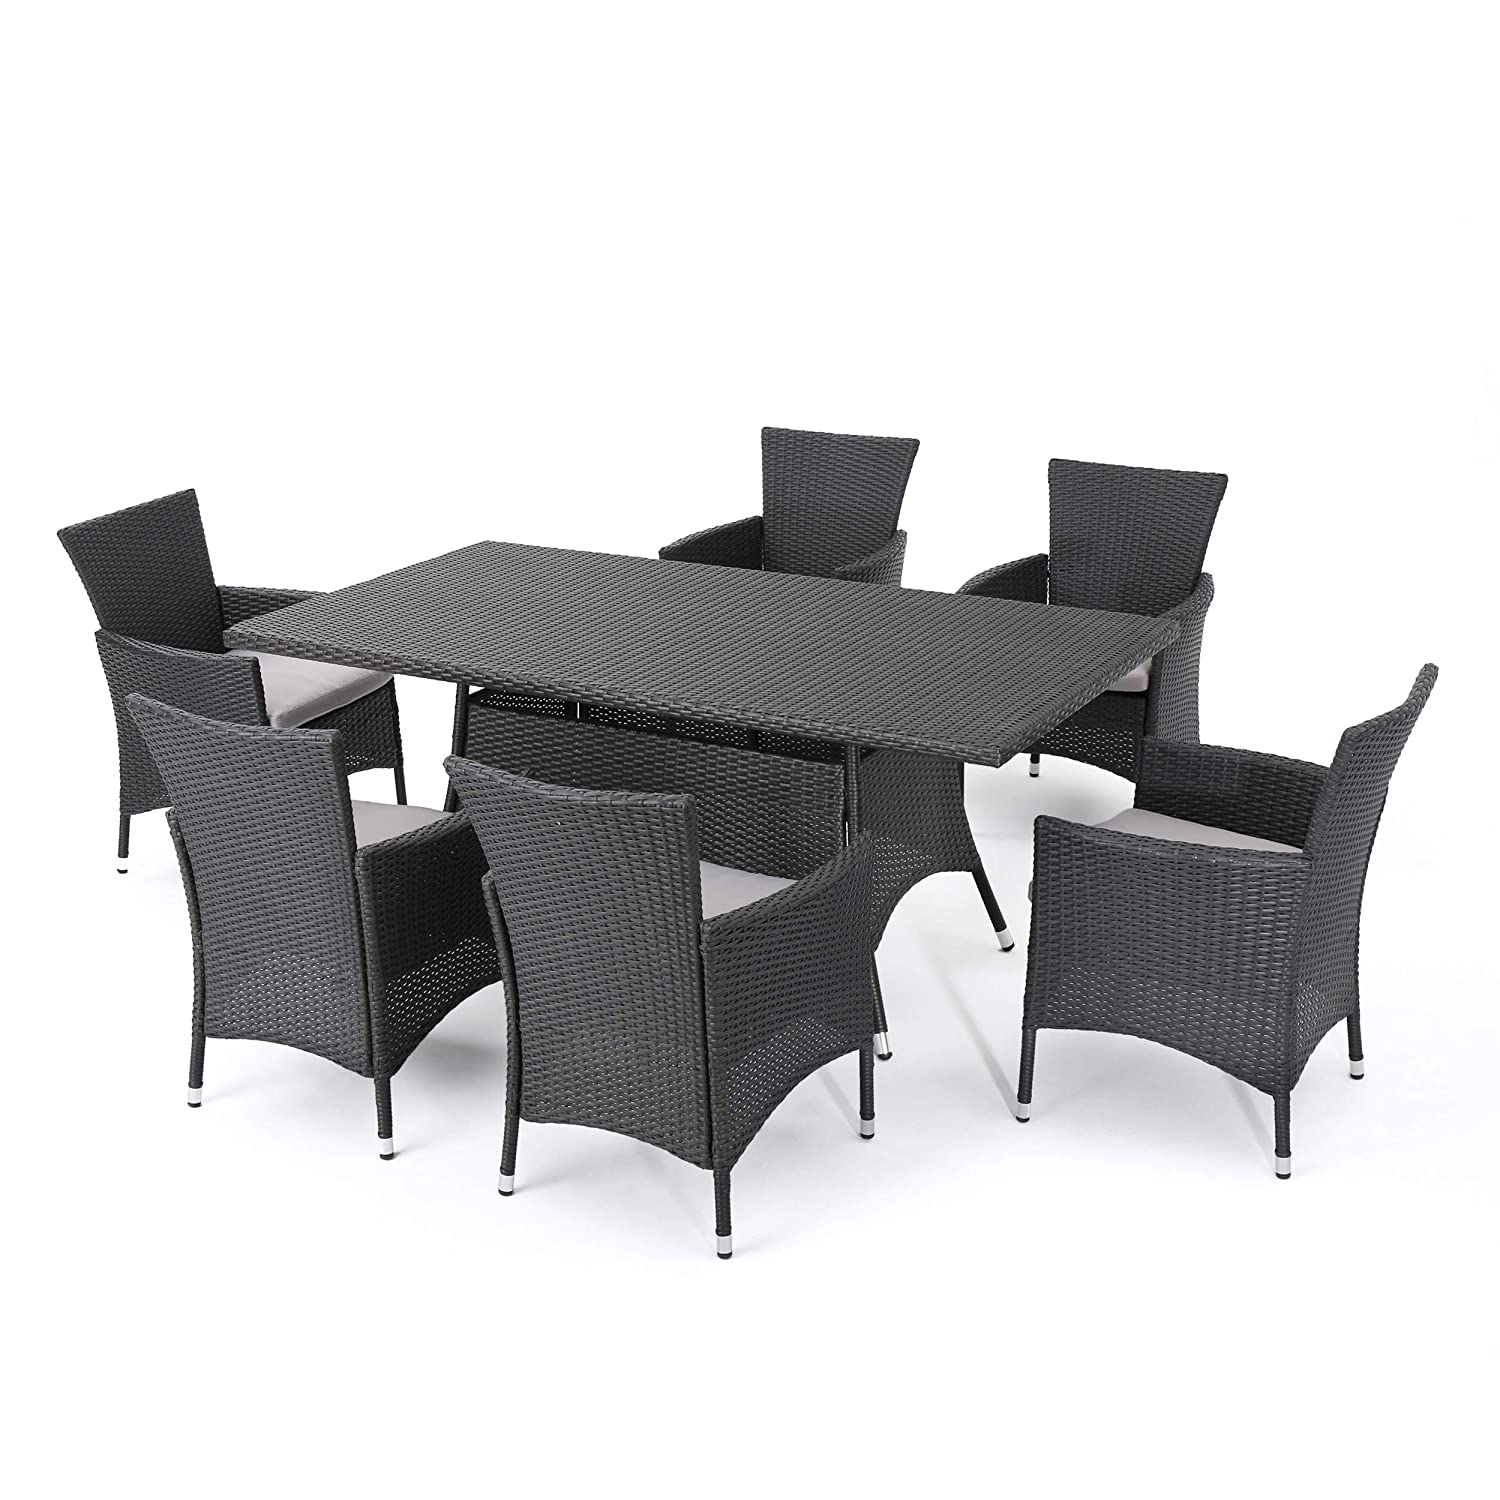 Christopher Knight Home Macalla 7-Piece Wicker Outdoor Dining Set Perfect for Patio in Grey